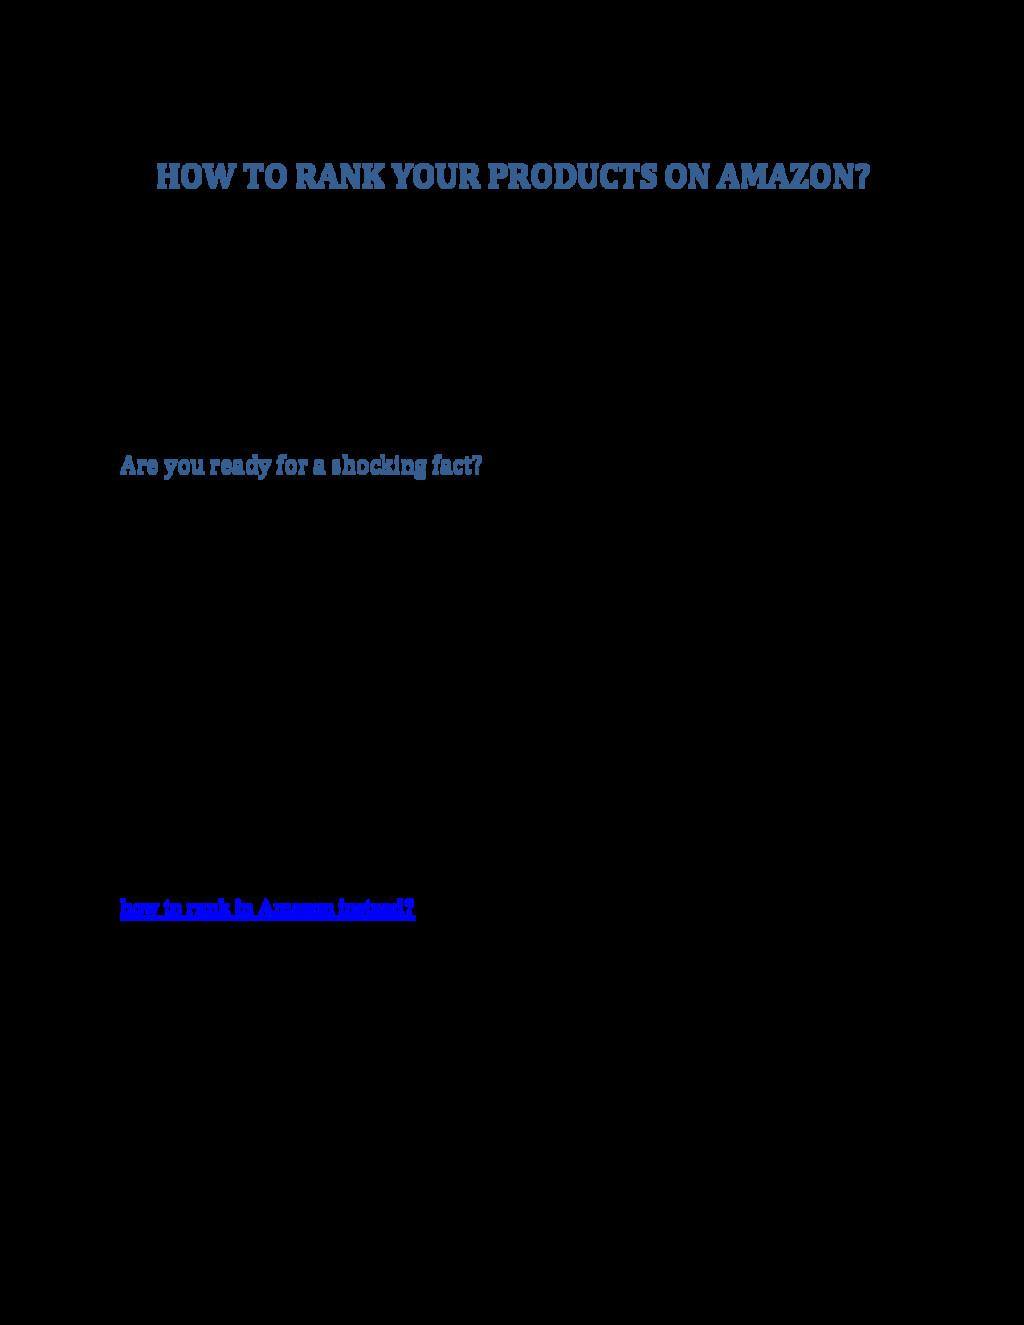 HOW TO RANK YOUR PRODUCTS ON AMAZON? In the abo...